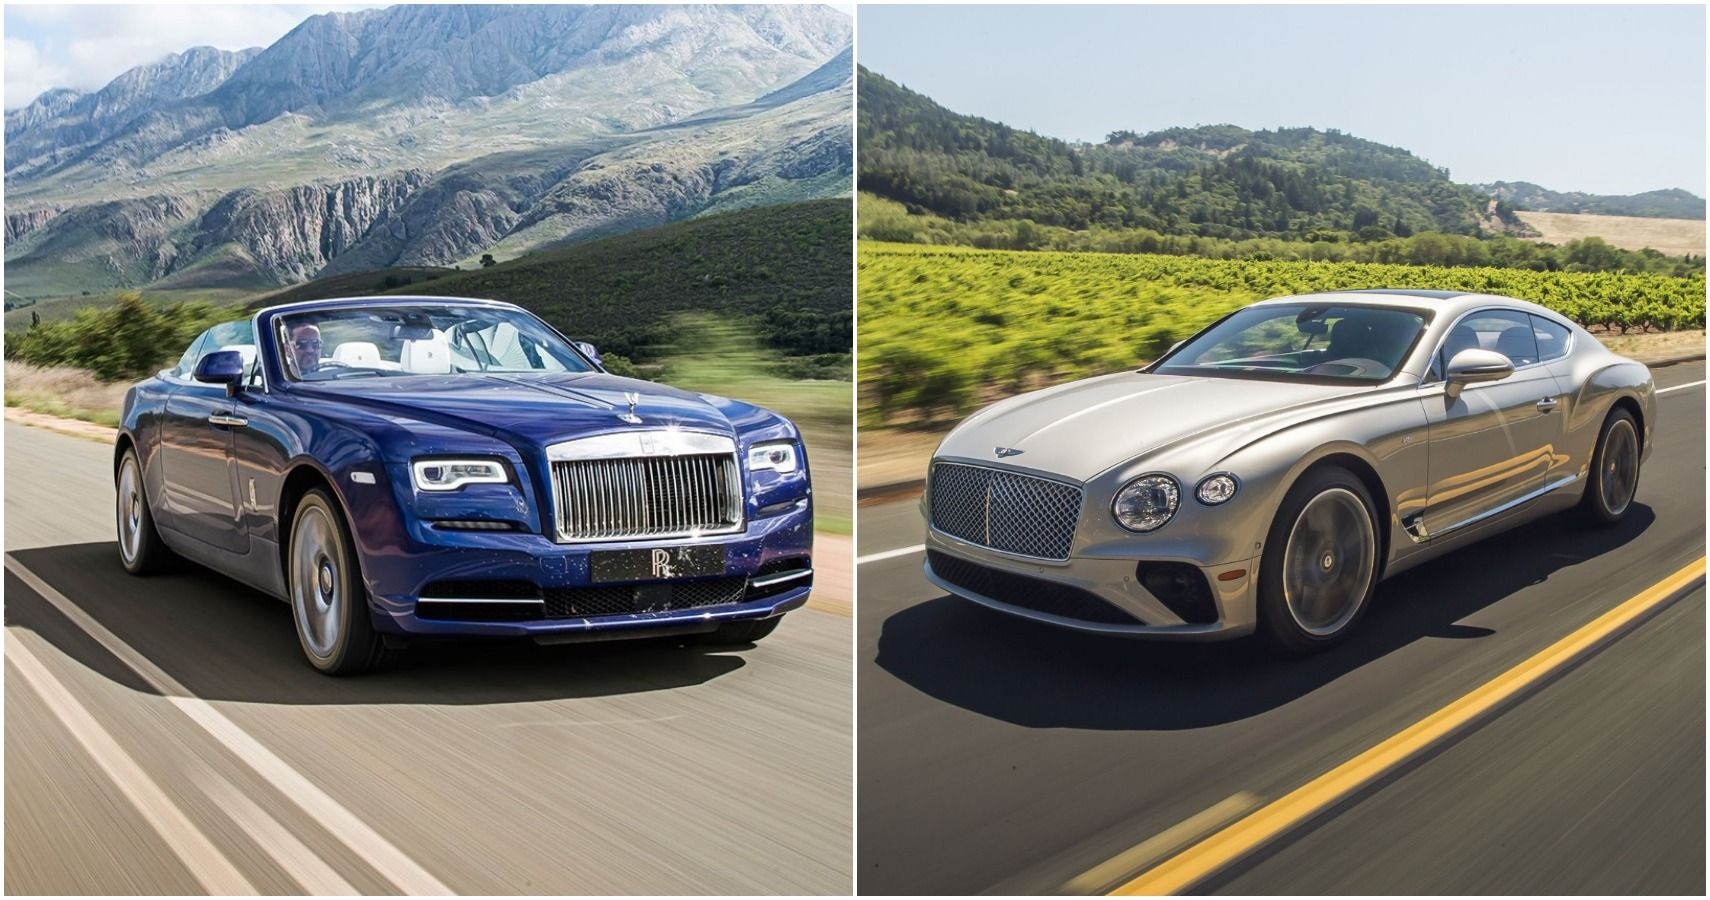 5 Greatest Luxury Cars From Bentley Vs 5 From Rolls Royce